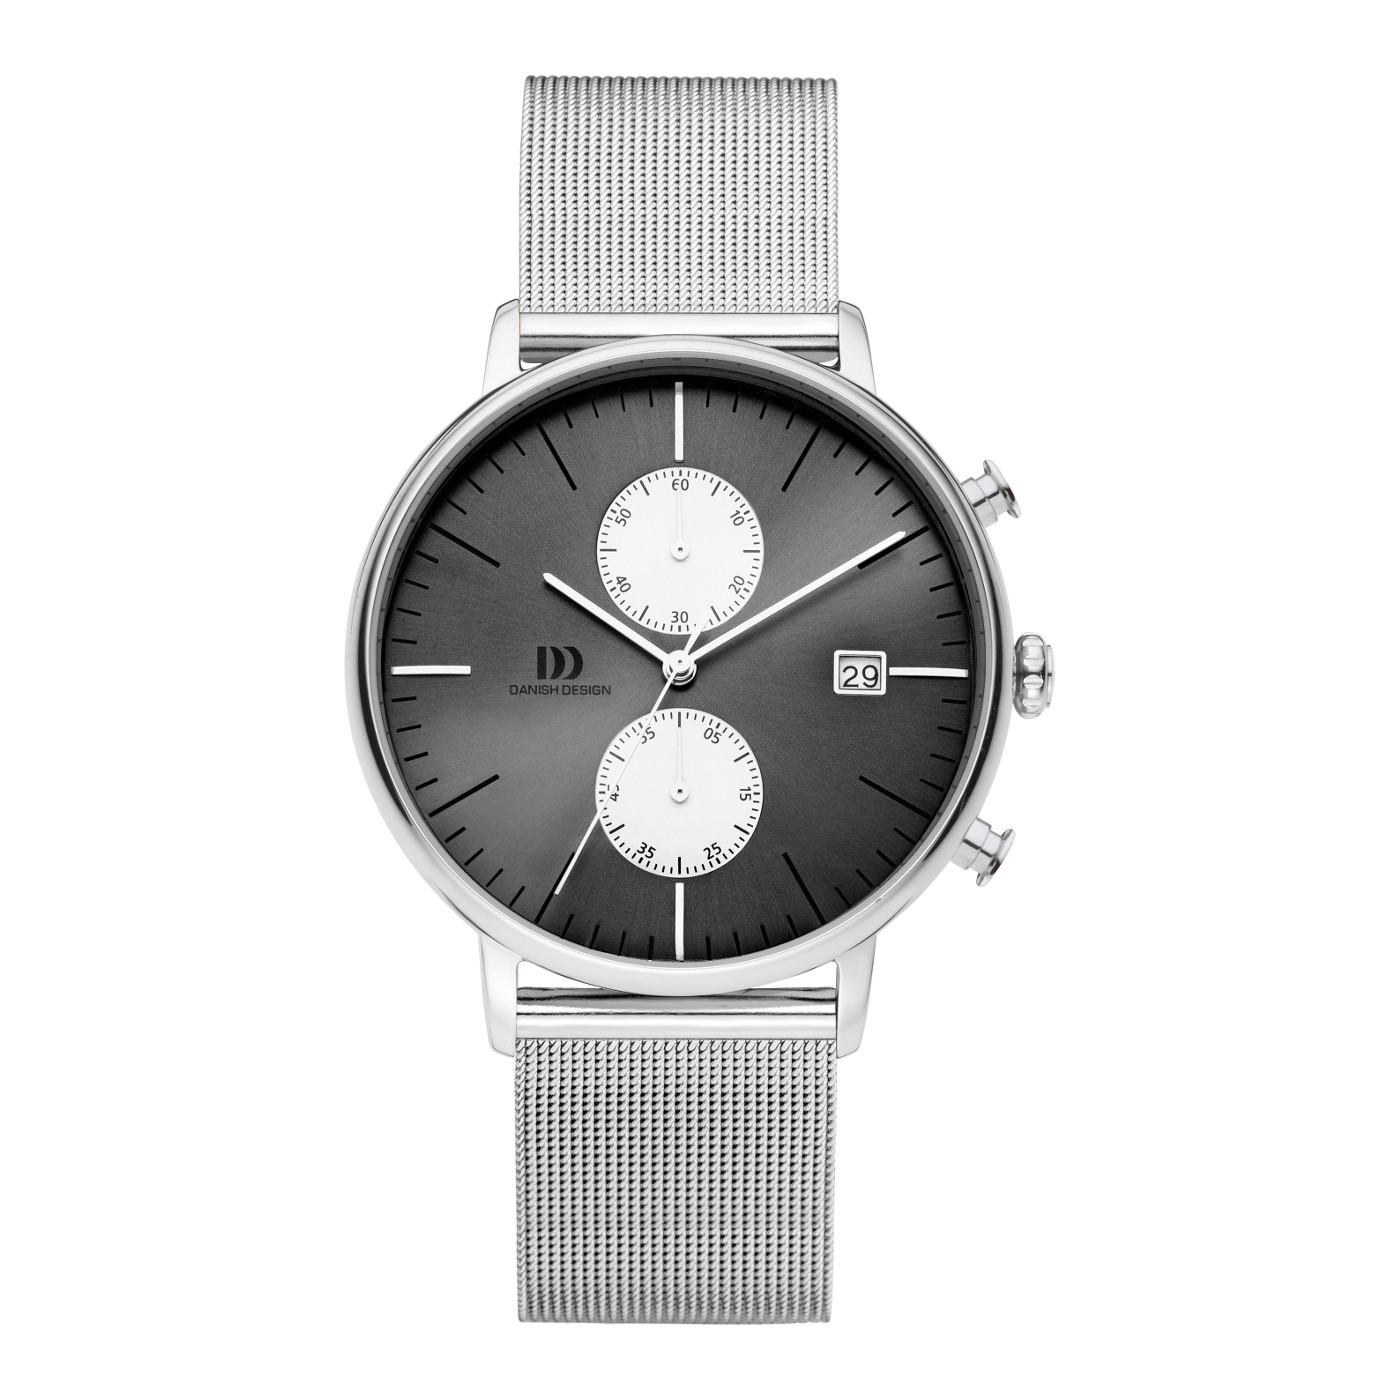 Danish Design Steel horloge IQ78Q975